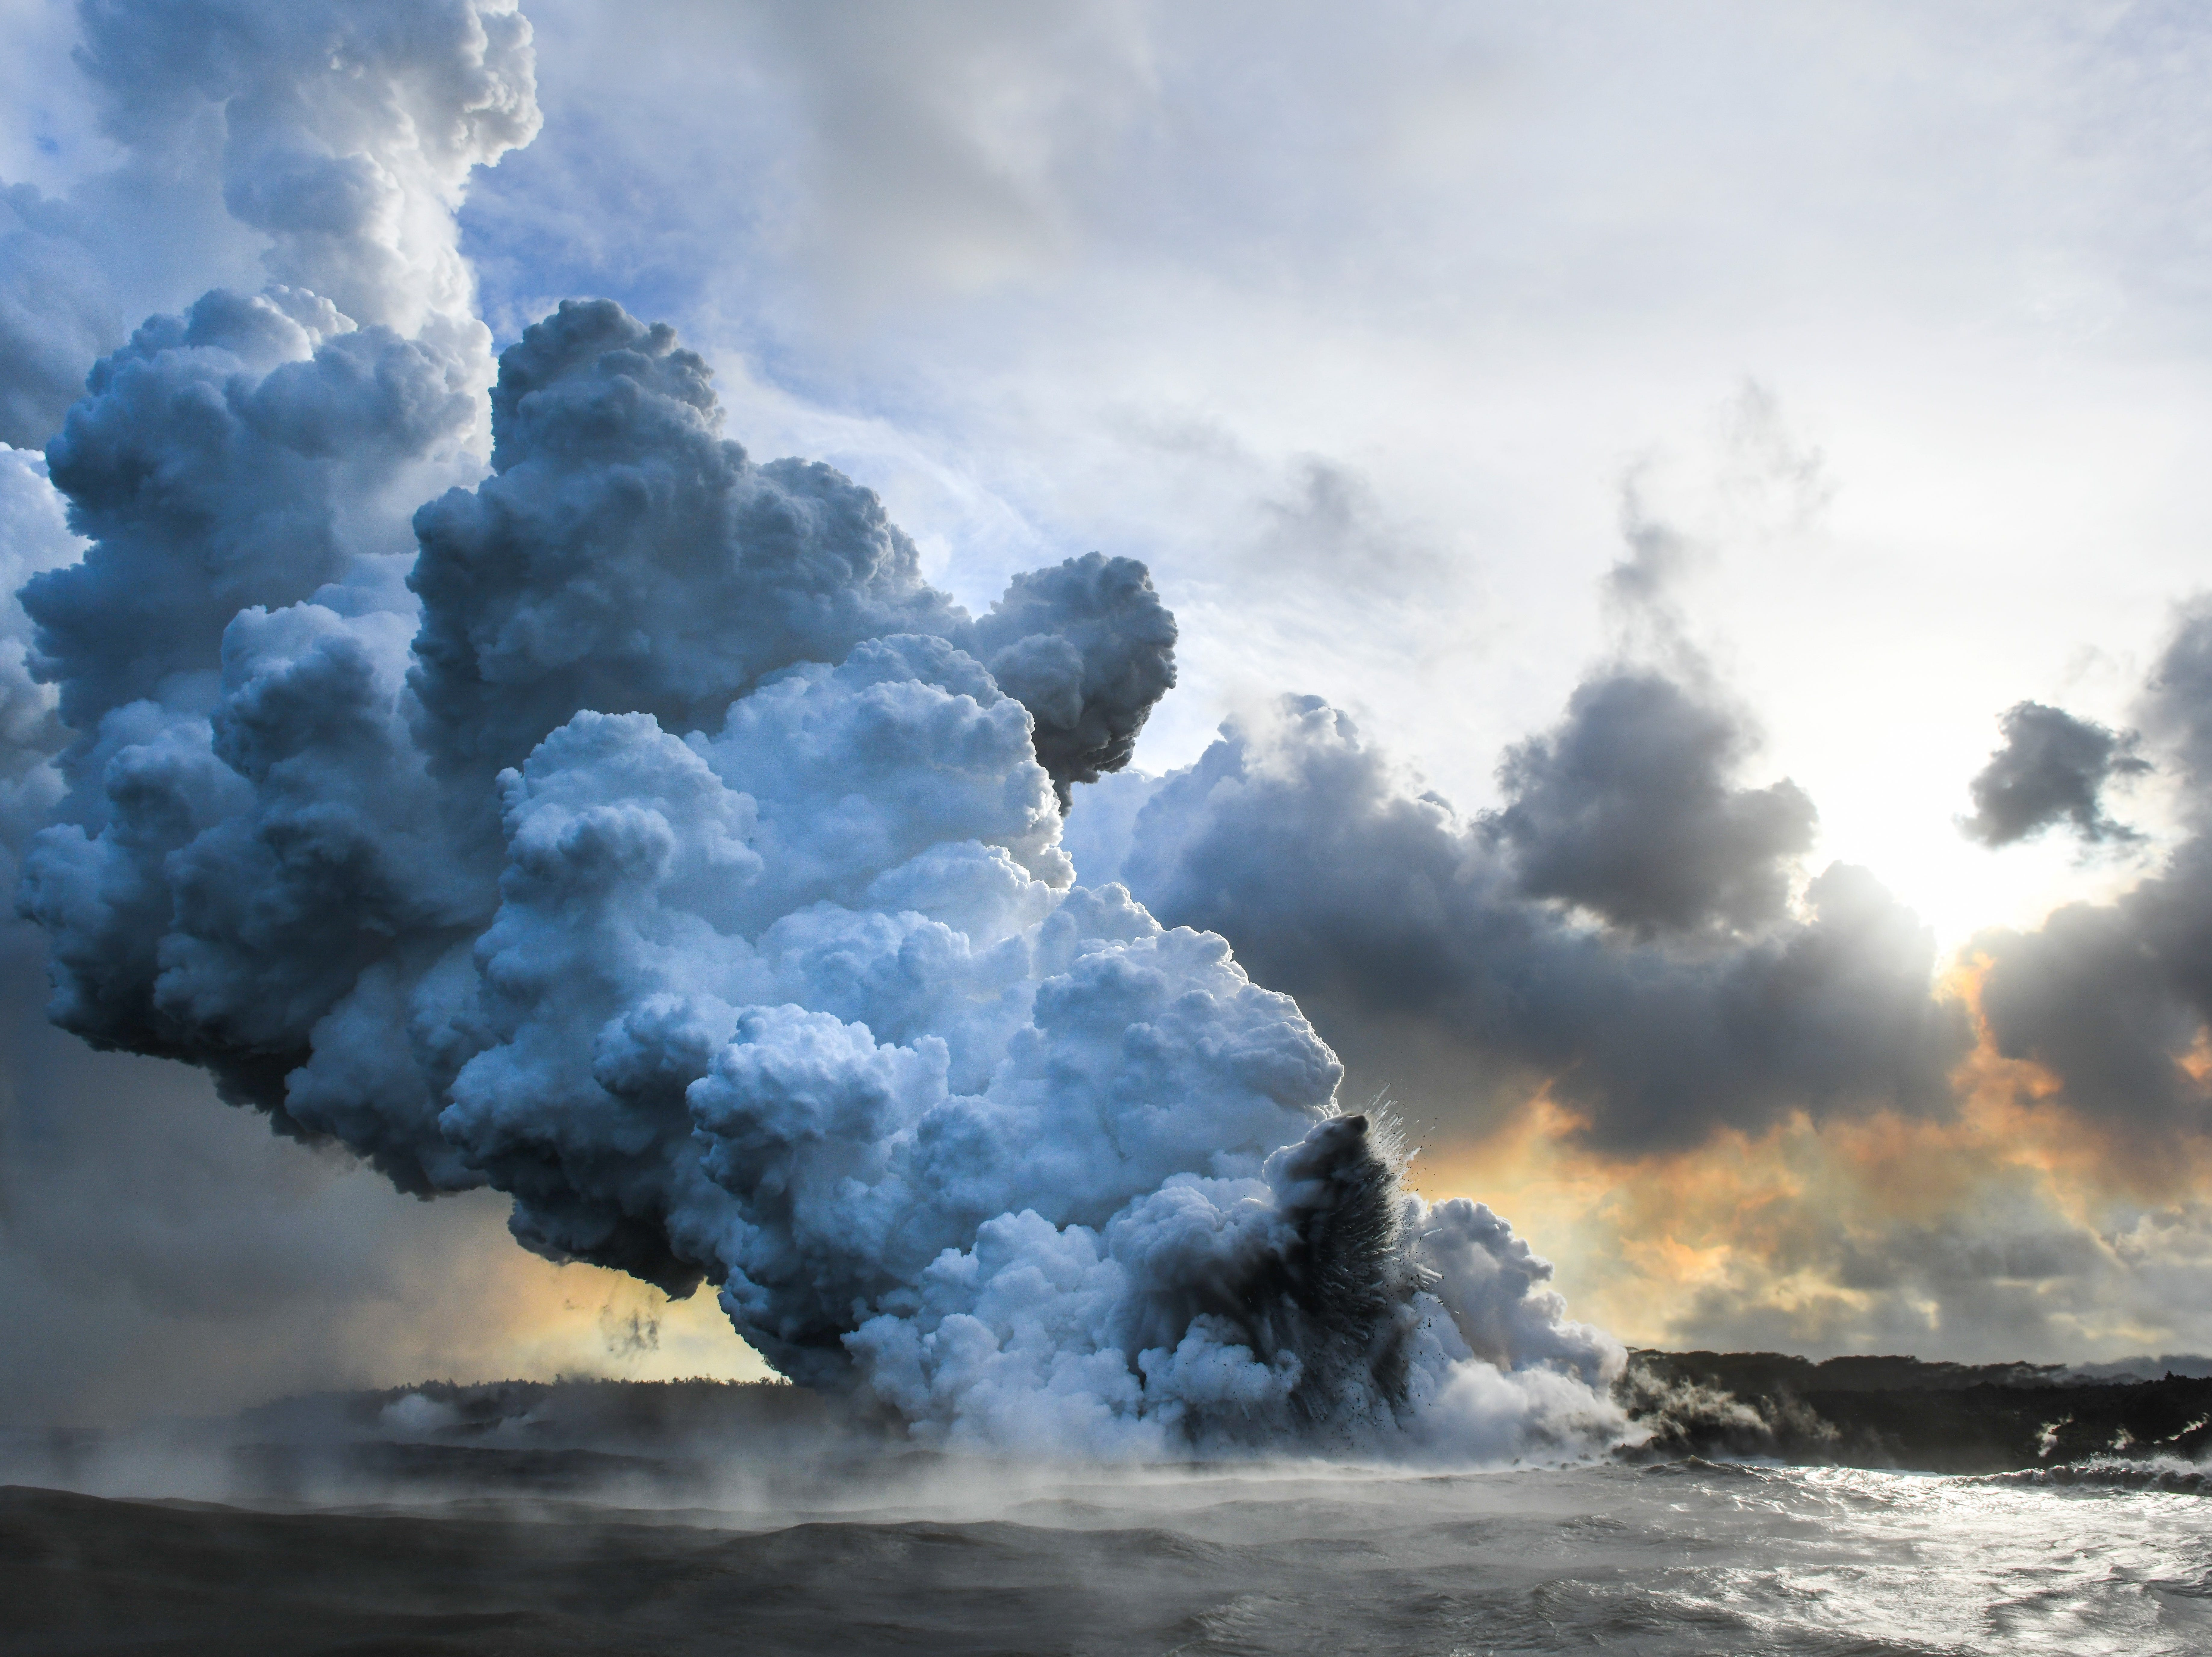 May 21, 2018: Steam rises from the entry point where lava from the Kilauea volcano hits the Pacific Ocean in Hilo, Hawaii. The Kilauea volcano erupted on May 3, with the lava flow destroying 24 homes and causing the evacuation of 2,000 people.